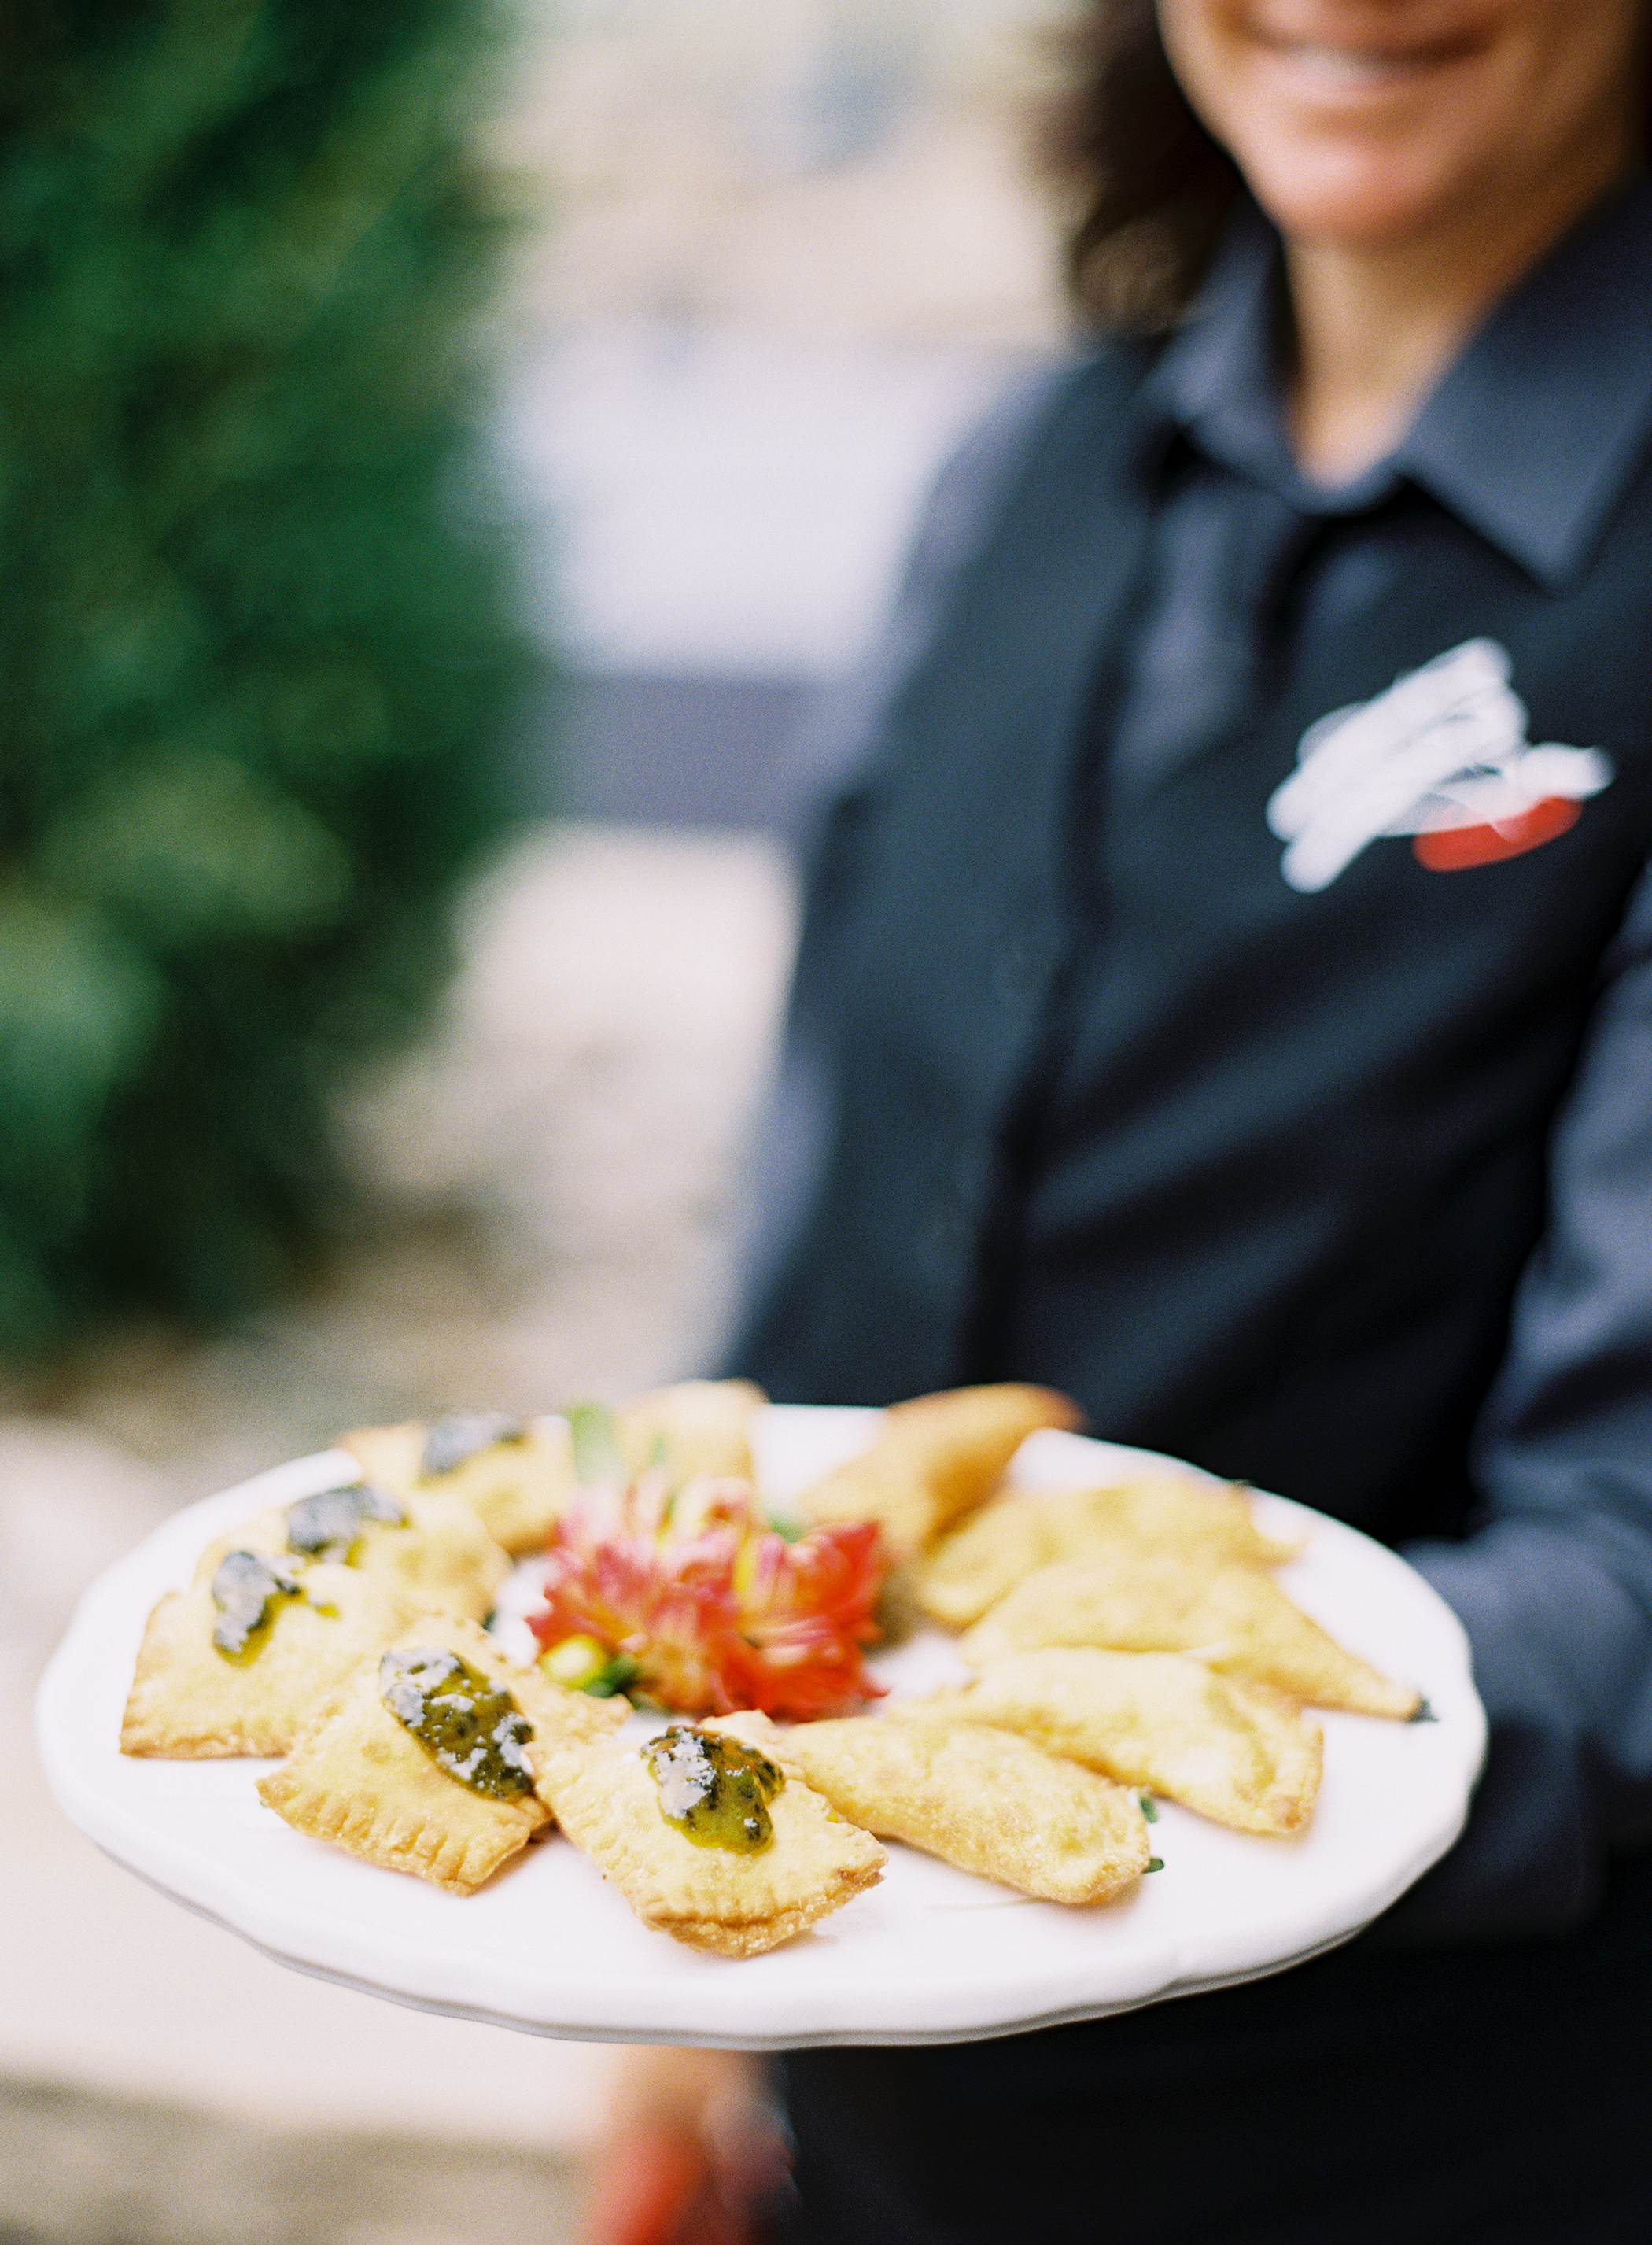 Wedding caterer serving a tray of passed hors d'oeuvres